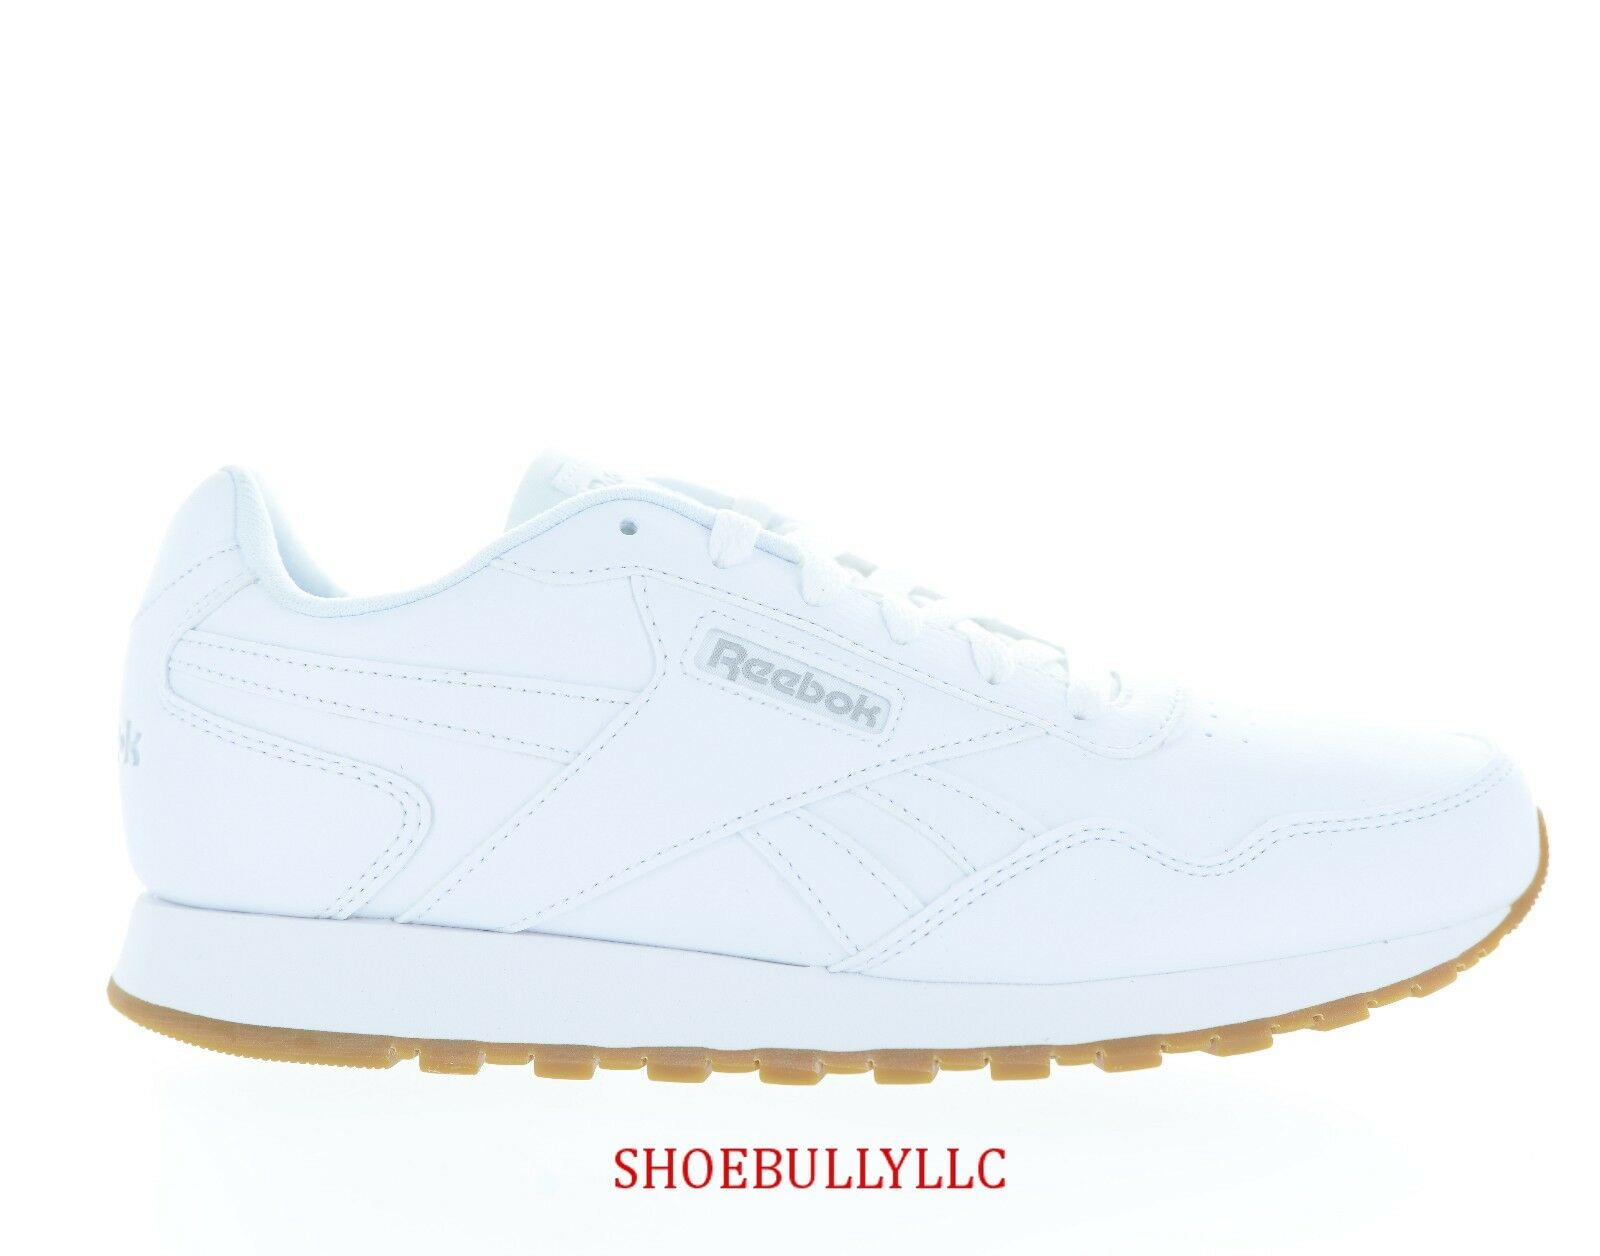 MEN'S REEBOK CL HARMAN RUN CM9203 US-WHITE GUM DEADSTOCK BRAND NEW